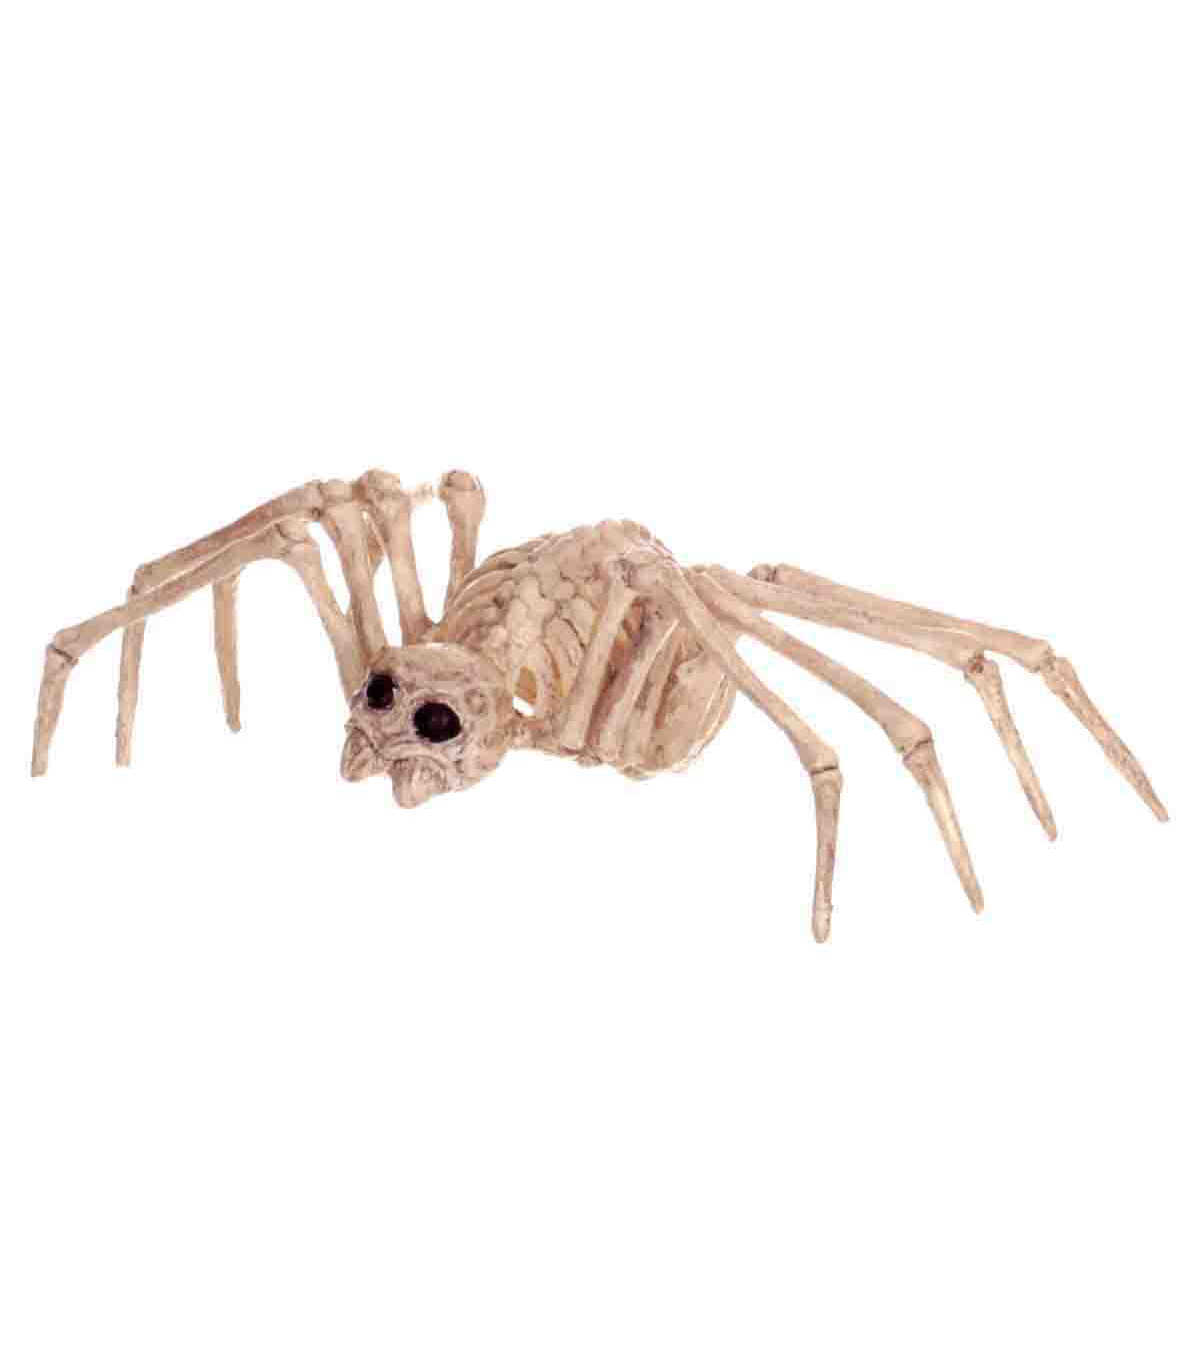 The Boneyard Halloween Mini Skeleton Spider